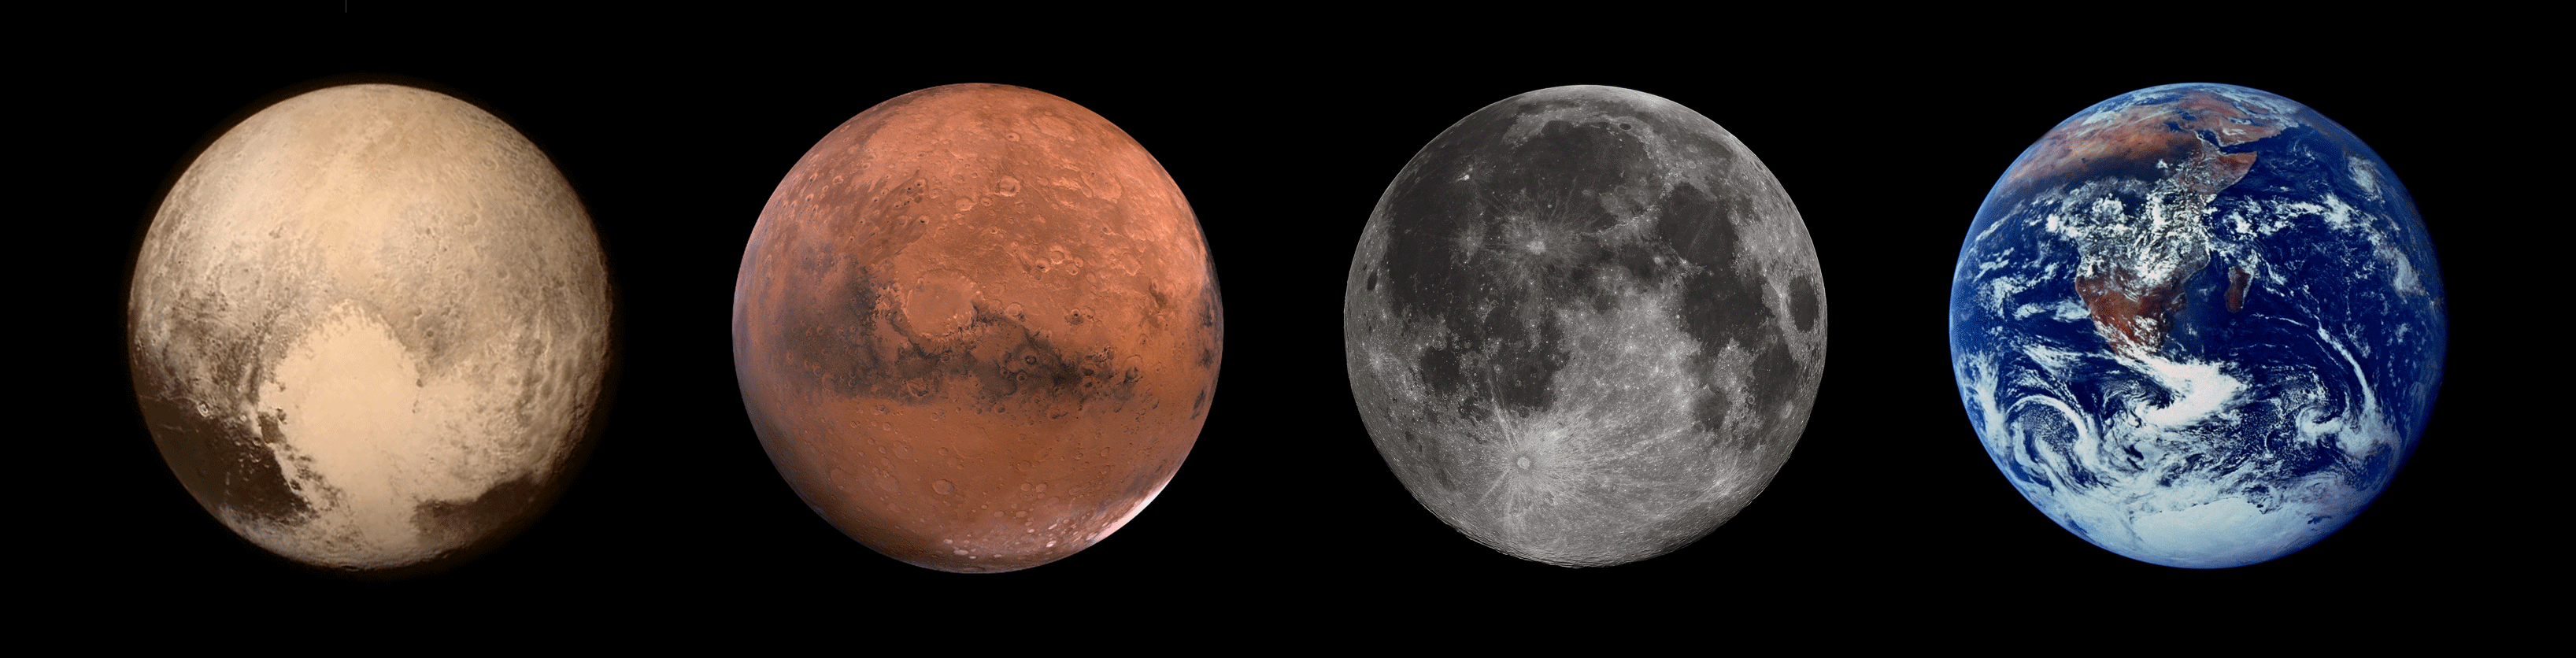 pluto-mars-moon-earth